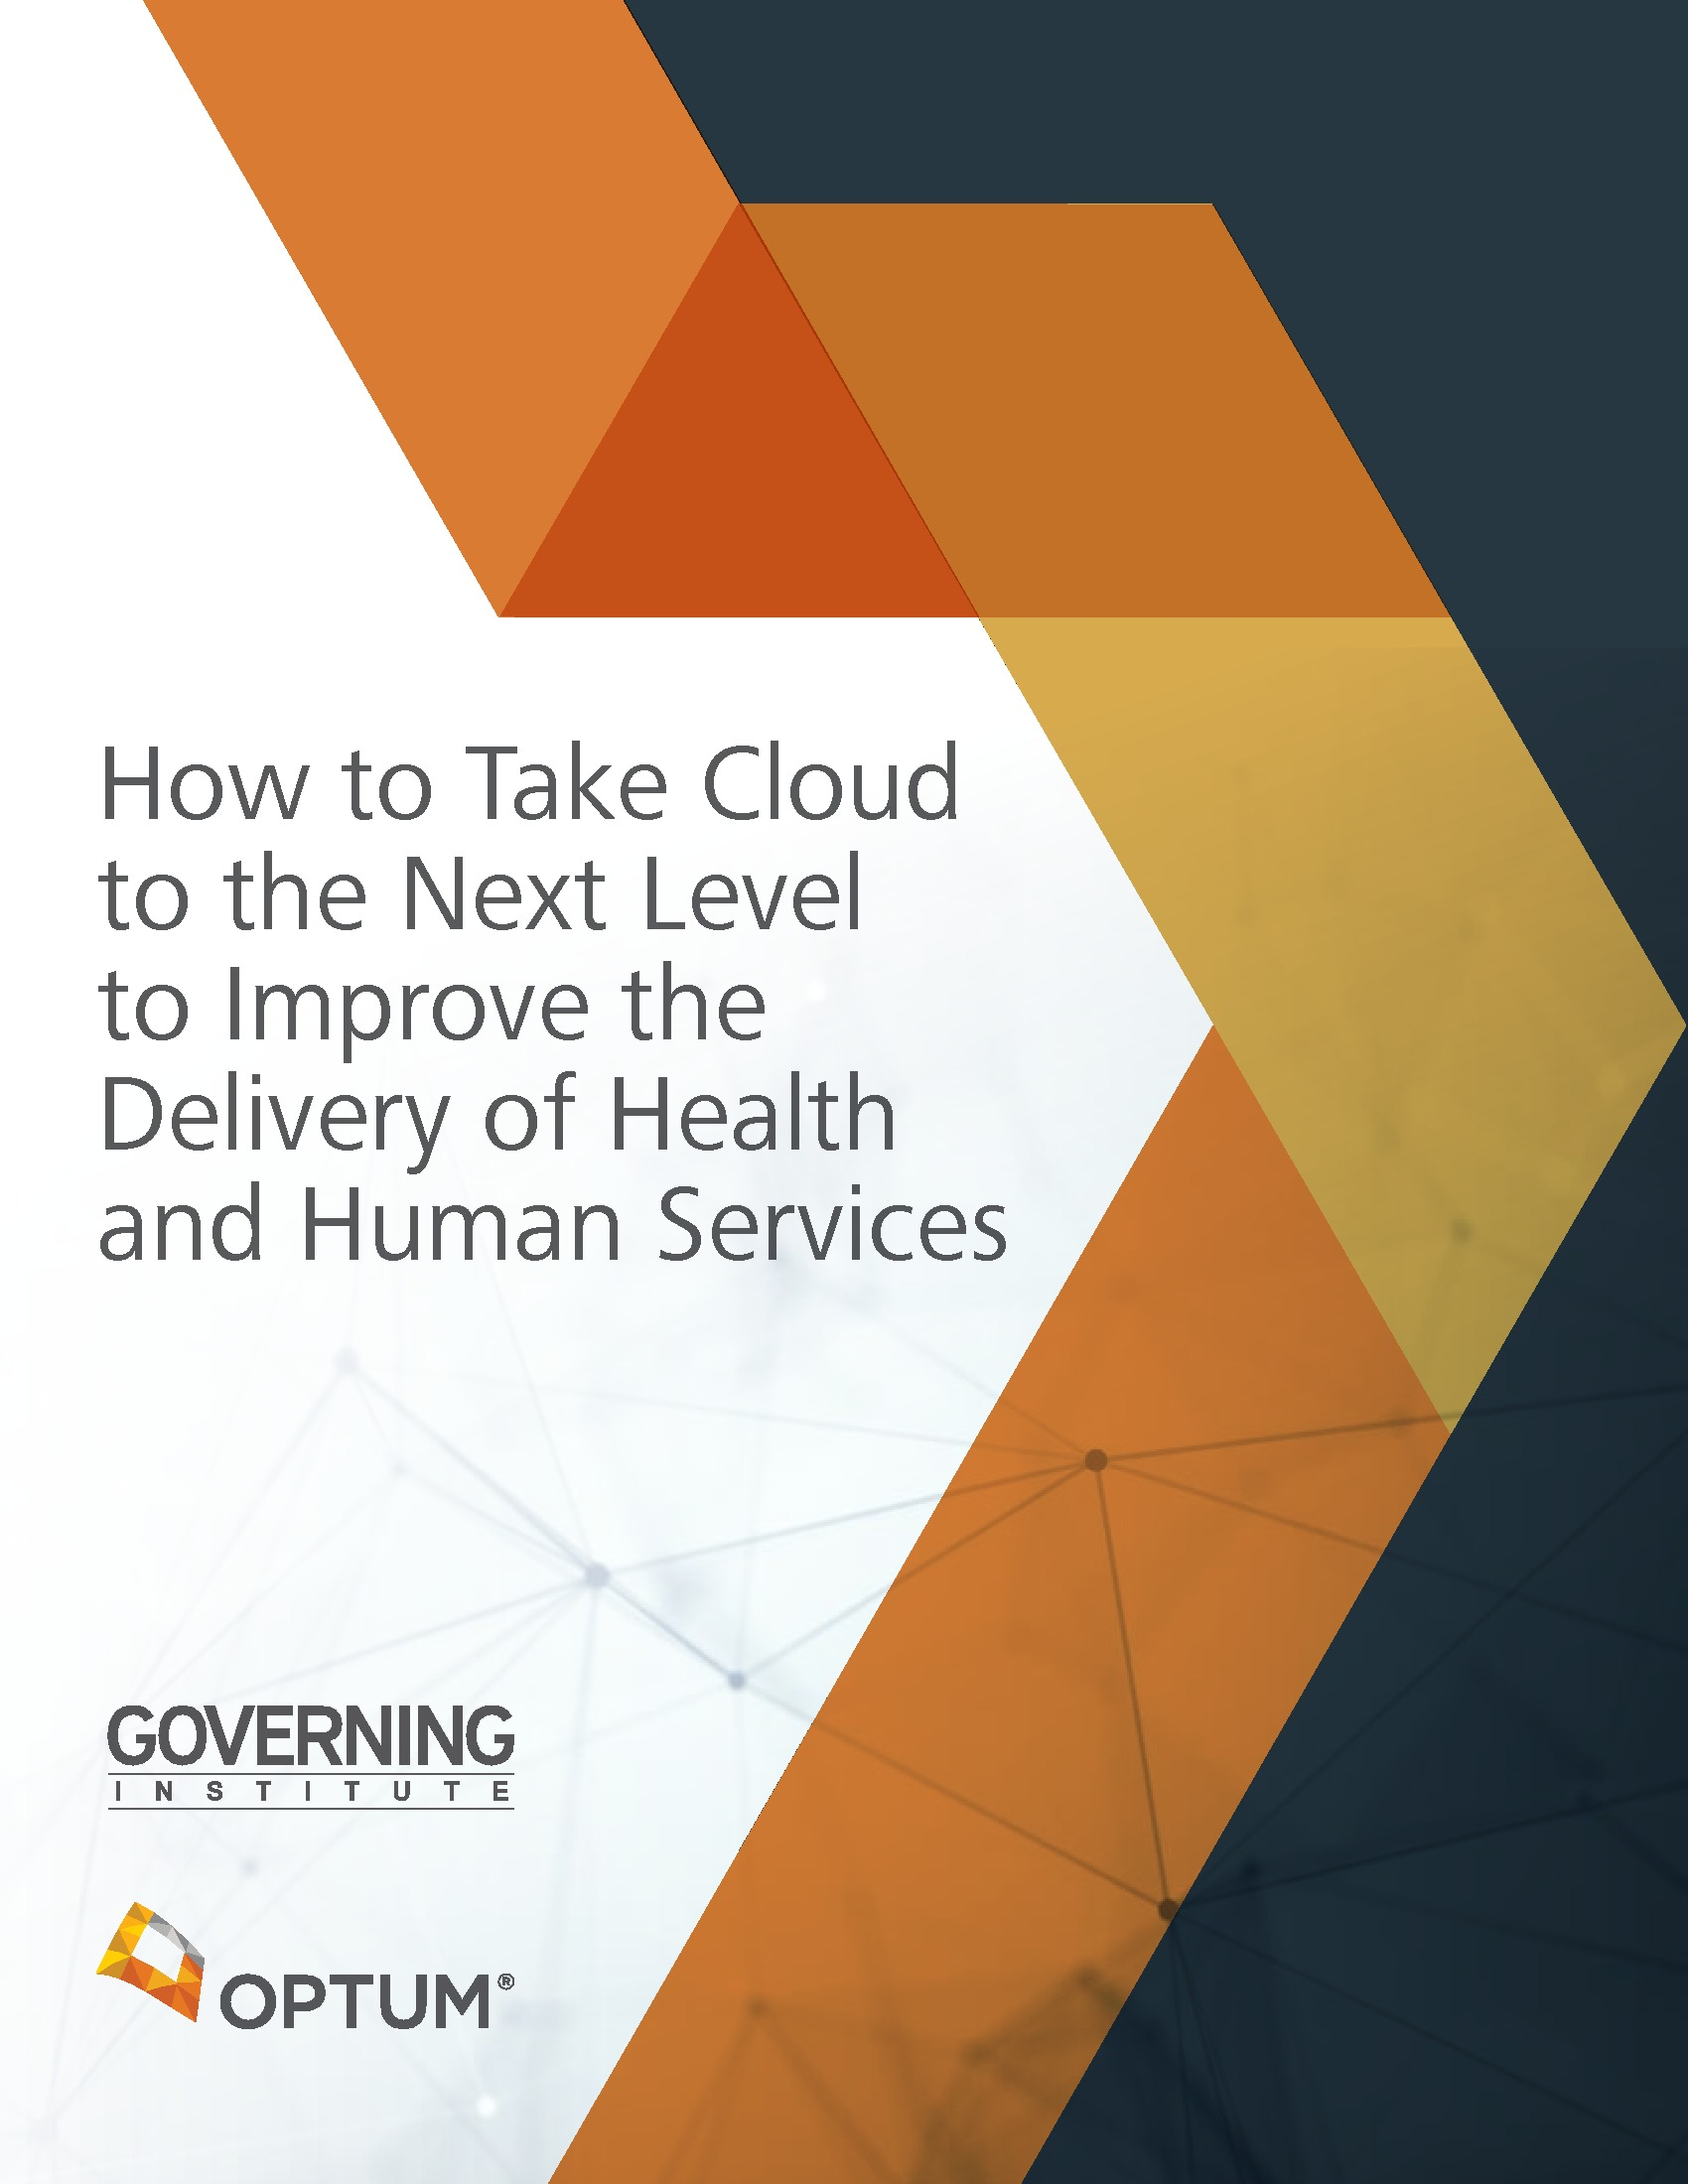 How to Take Cloud to the Next Level to Improve the Delivery of Health and Human Services